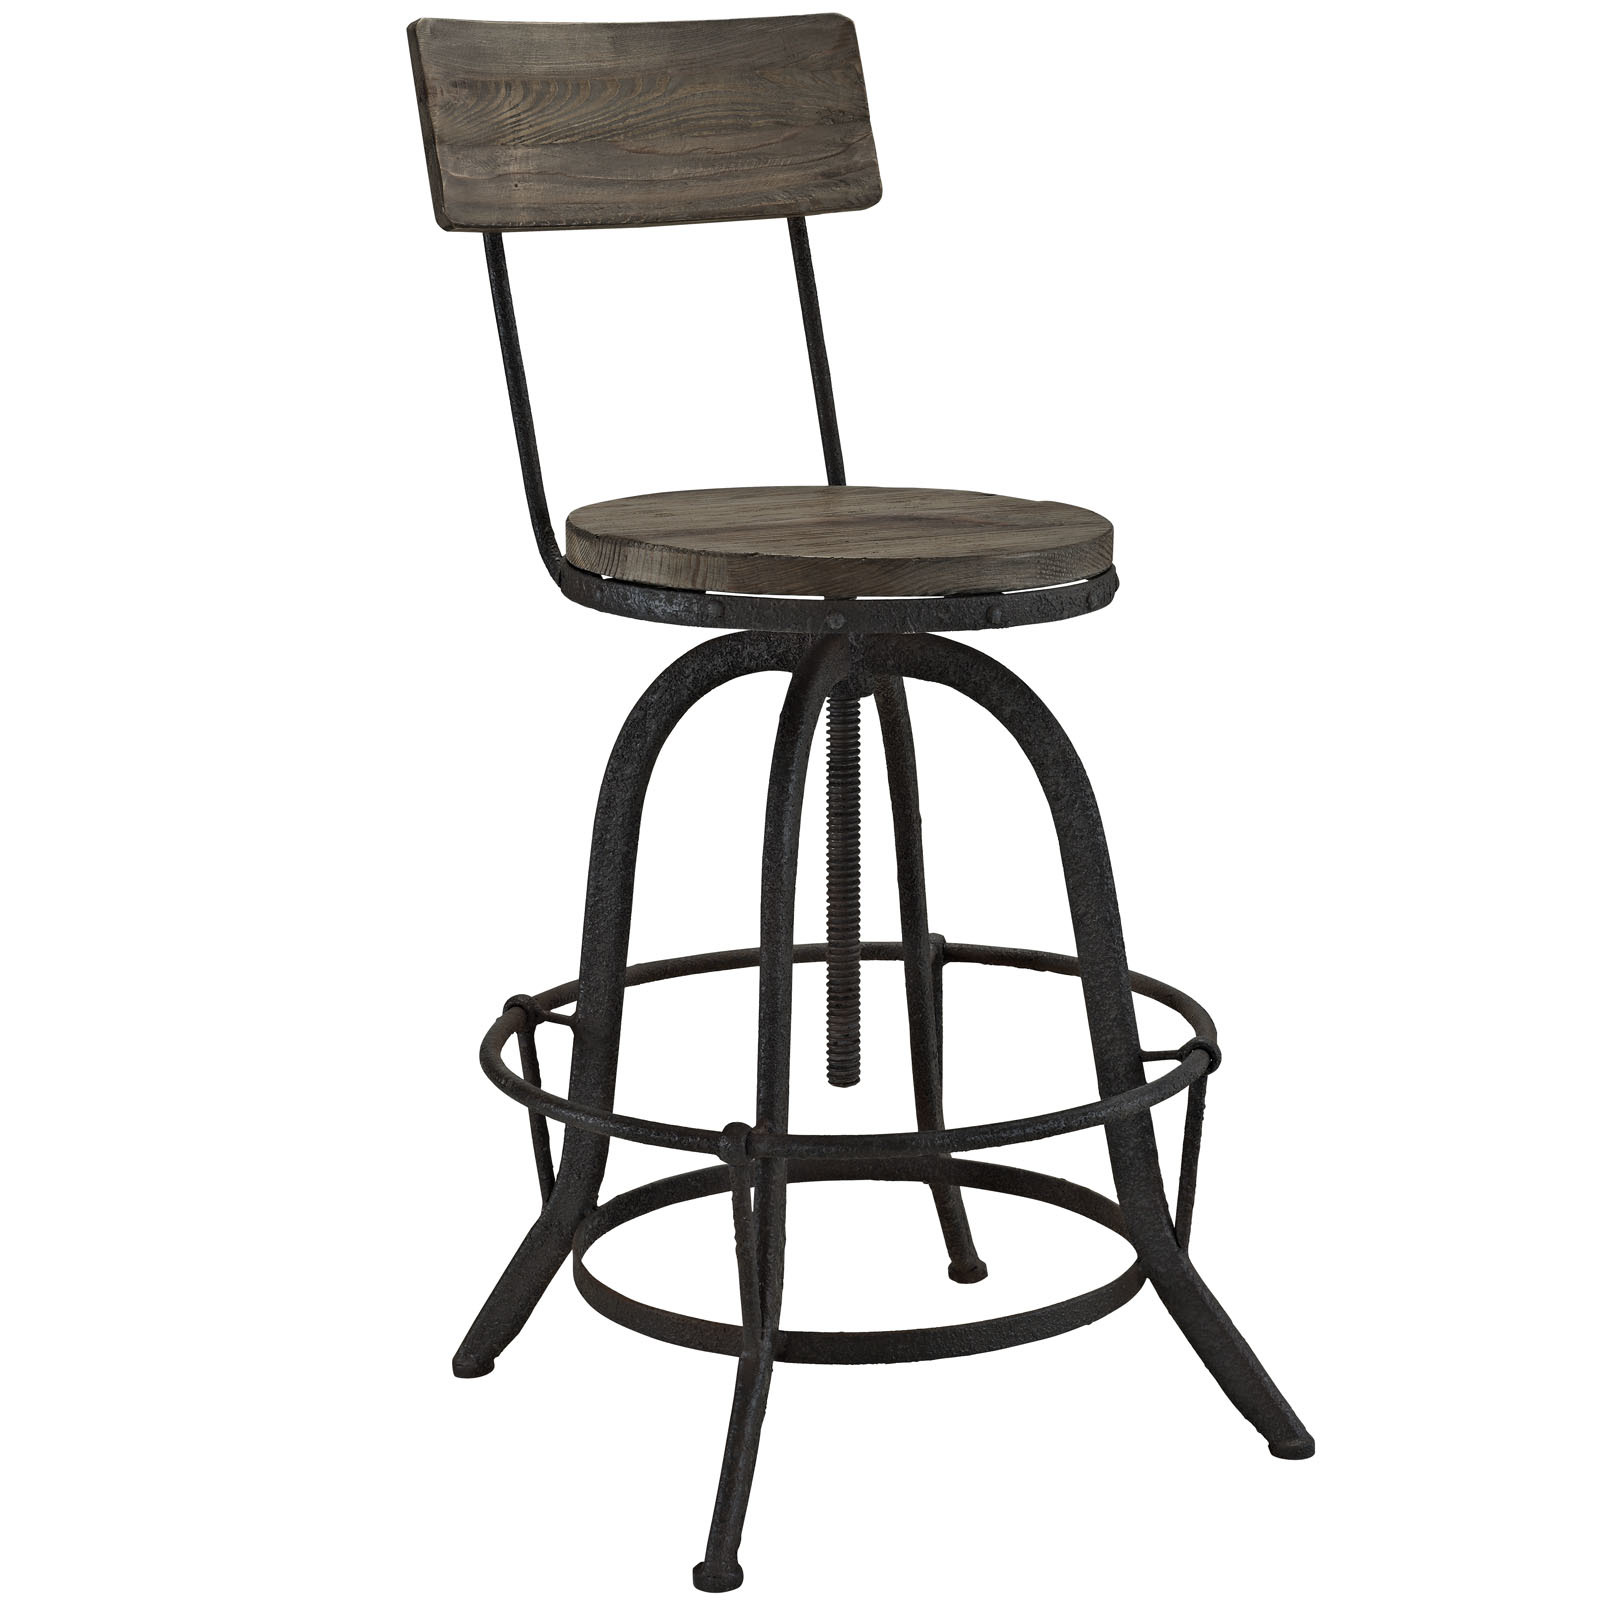 Superb img of  Furniture > Bar Stools > See more LexMod Procure Wood Bar Stool in with #5A5146 color and 1600x1600 pixels